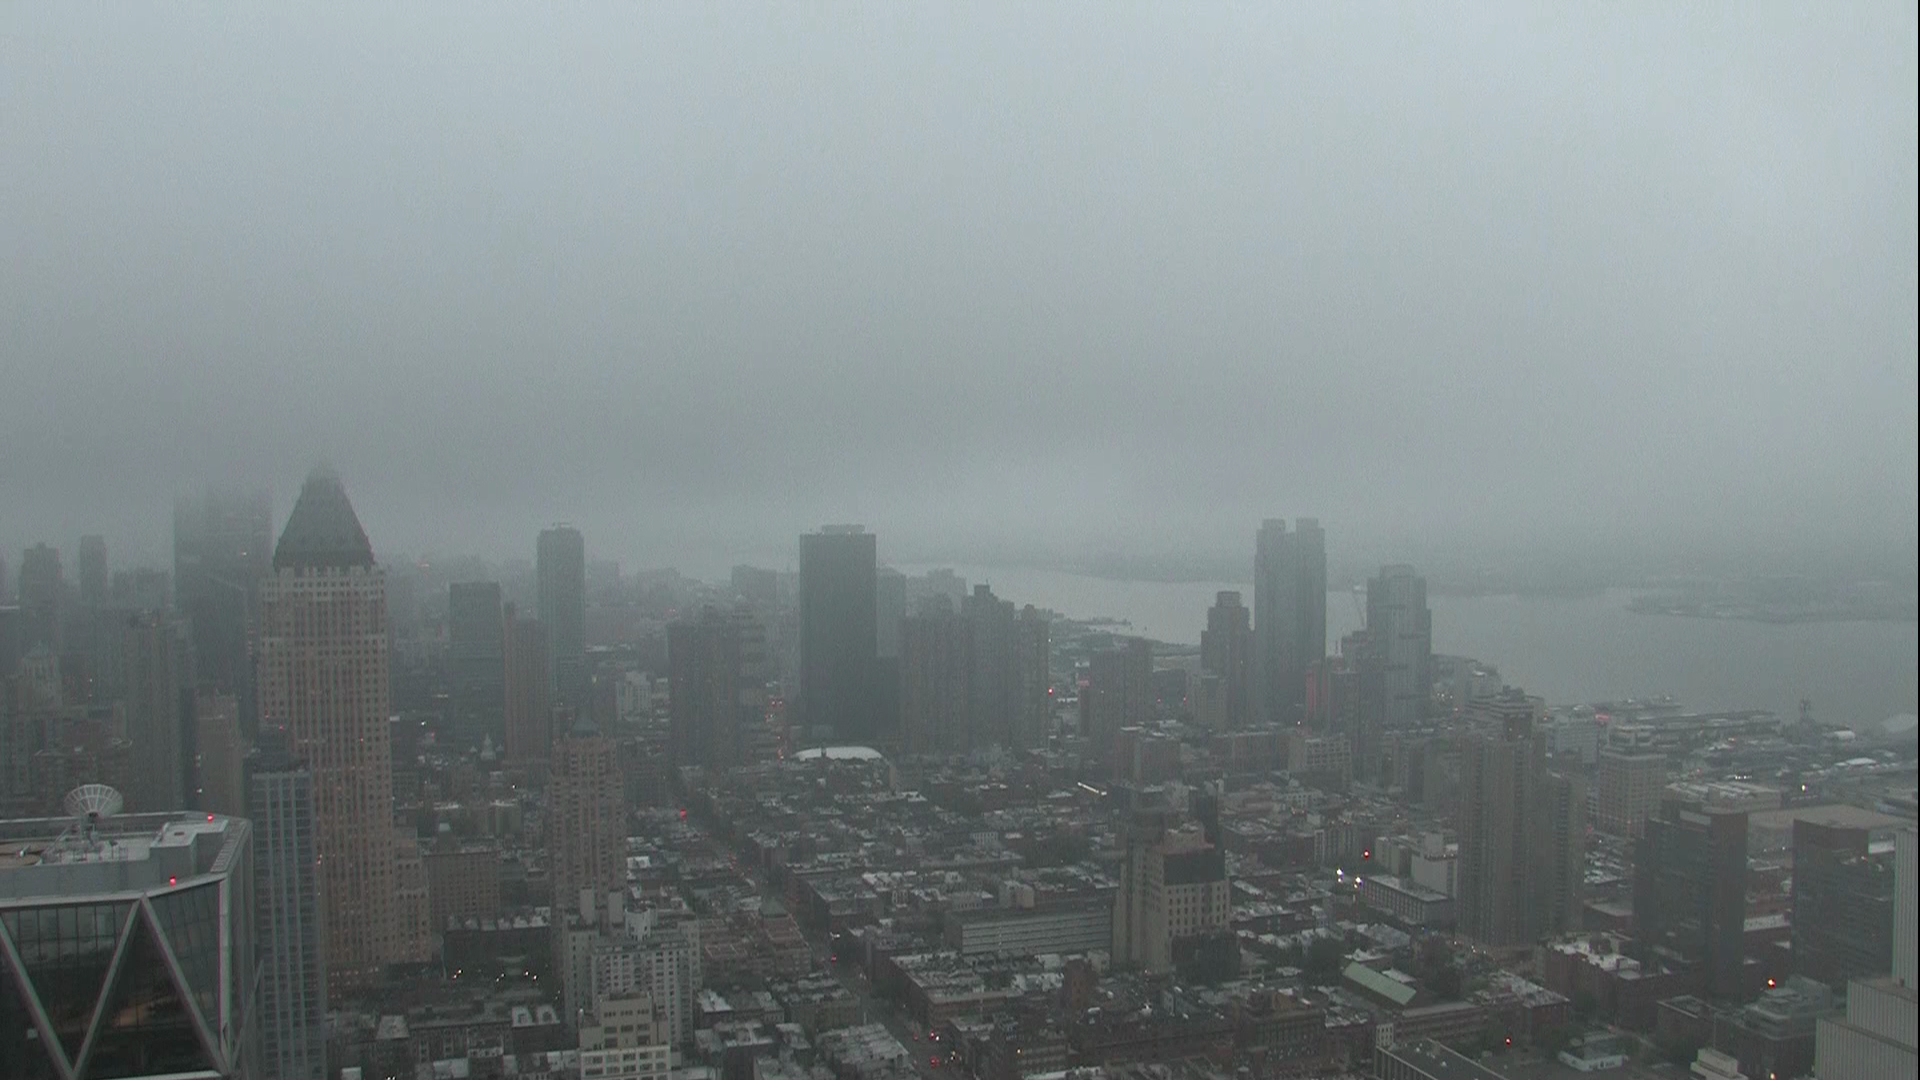 Twitter / ChrisCuomo: Another cloudy #NewDay begins ...